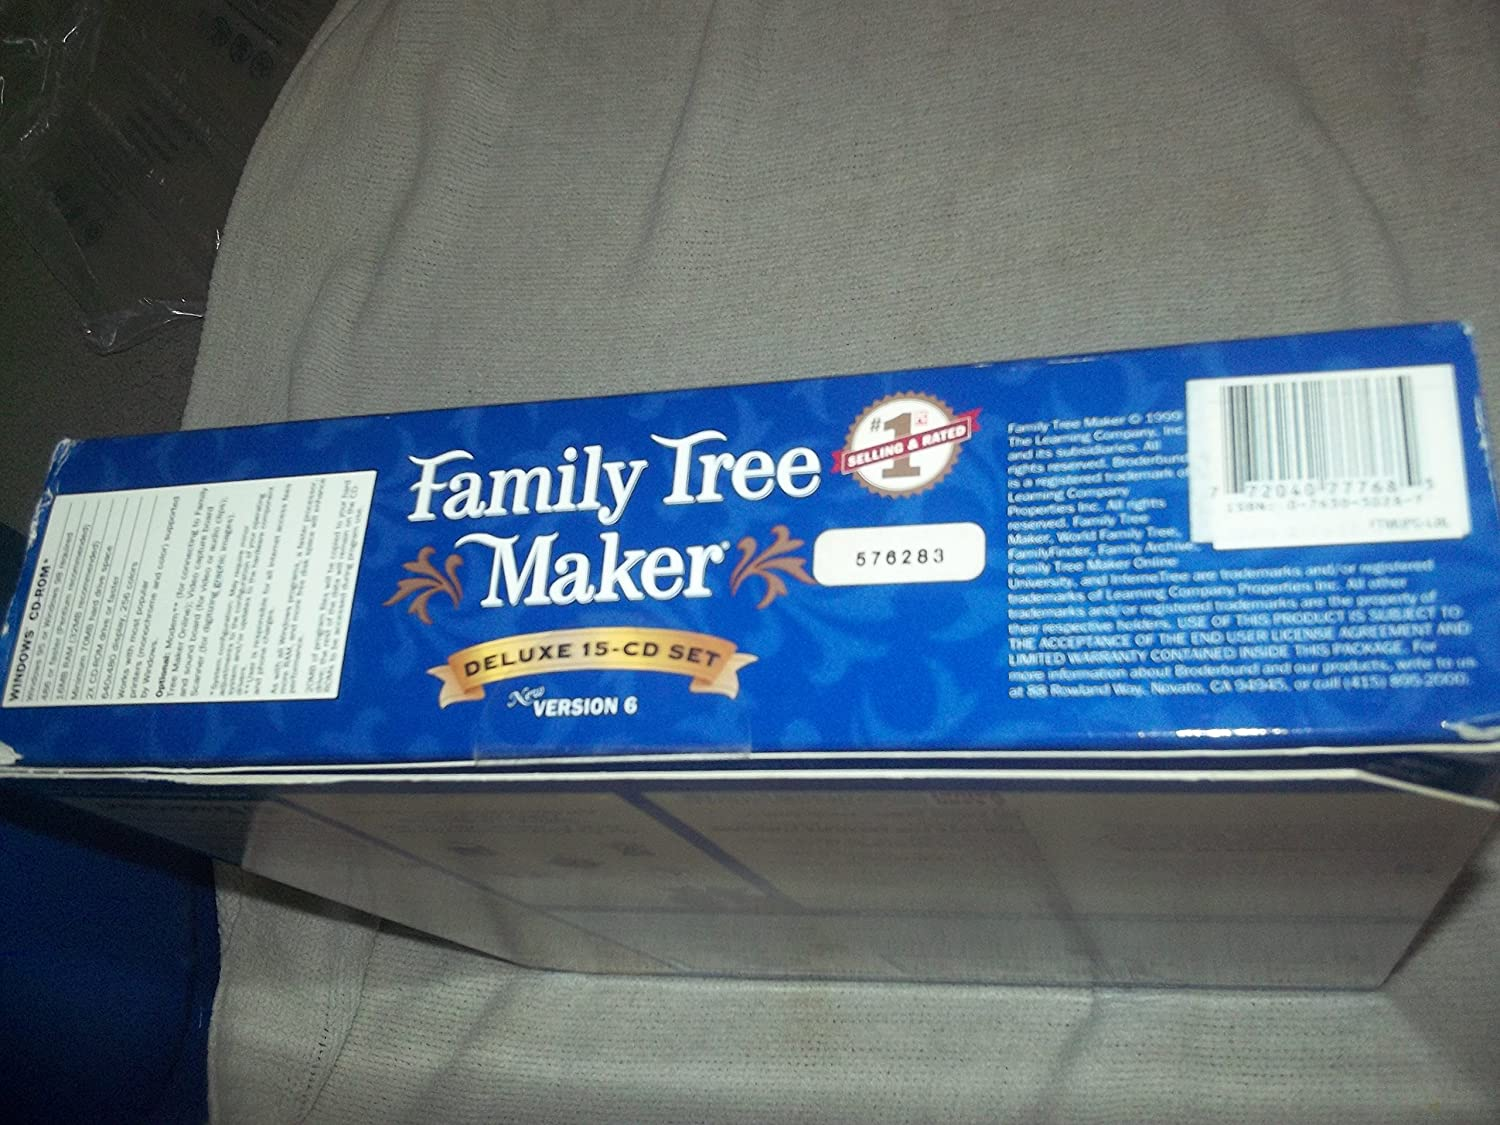 amazon com family tree maker deluxe 15 cd set version 6